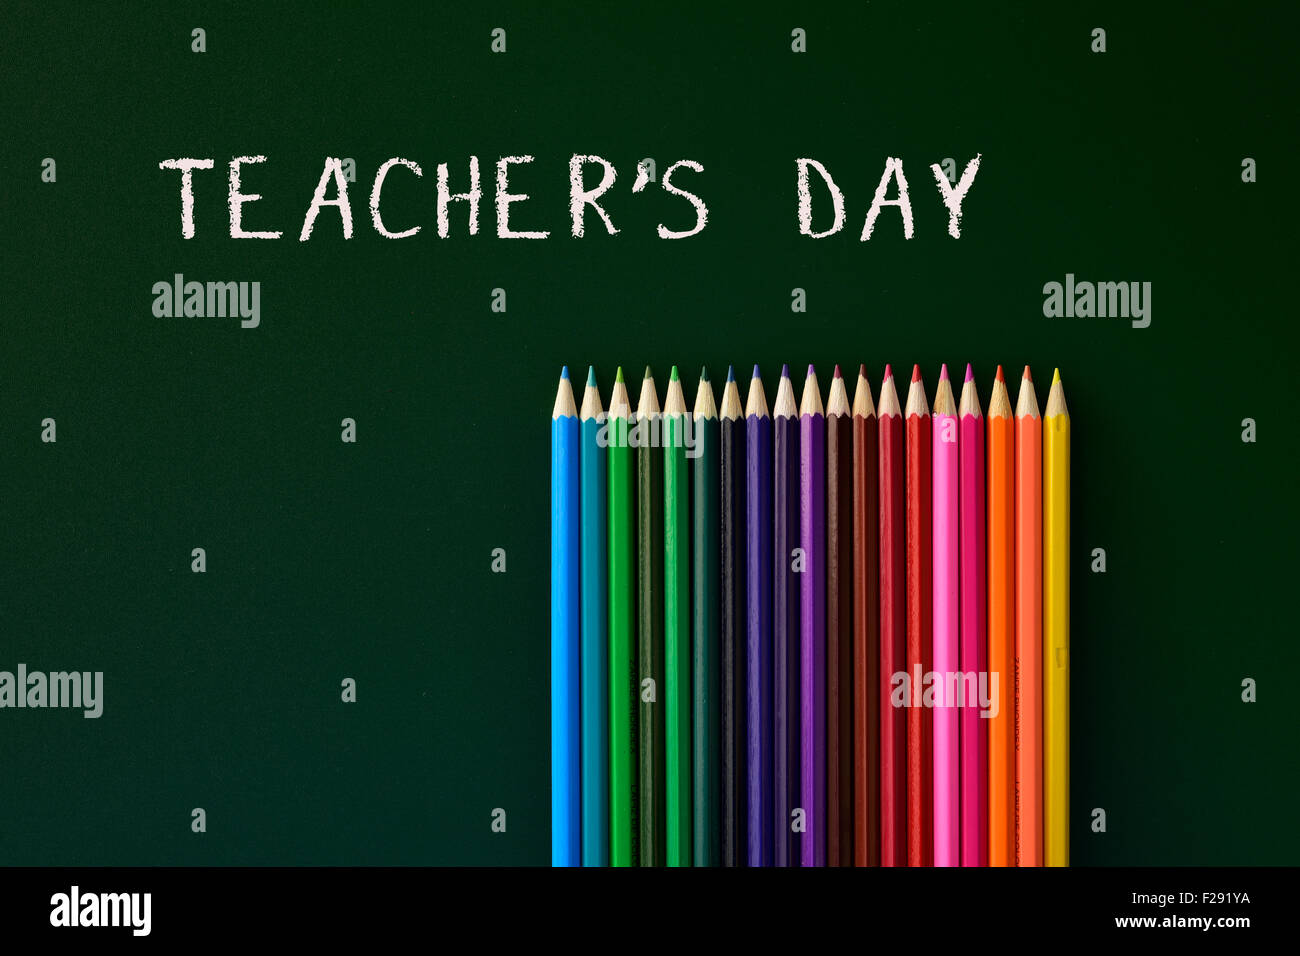 some coloured pencils of different colors and the text teachers day written in a green chalkboard - Stock Image